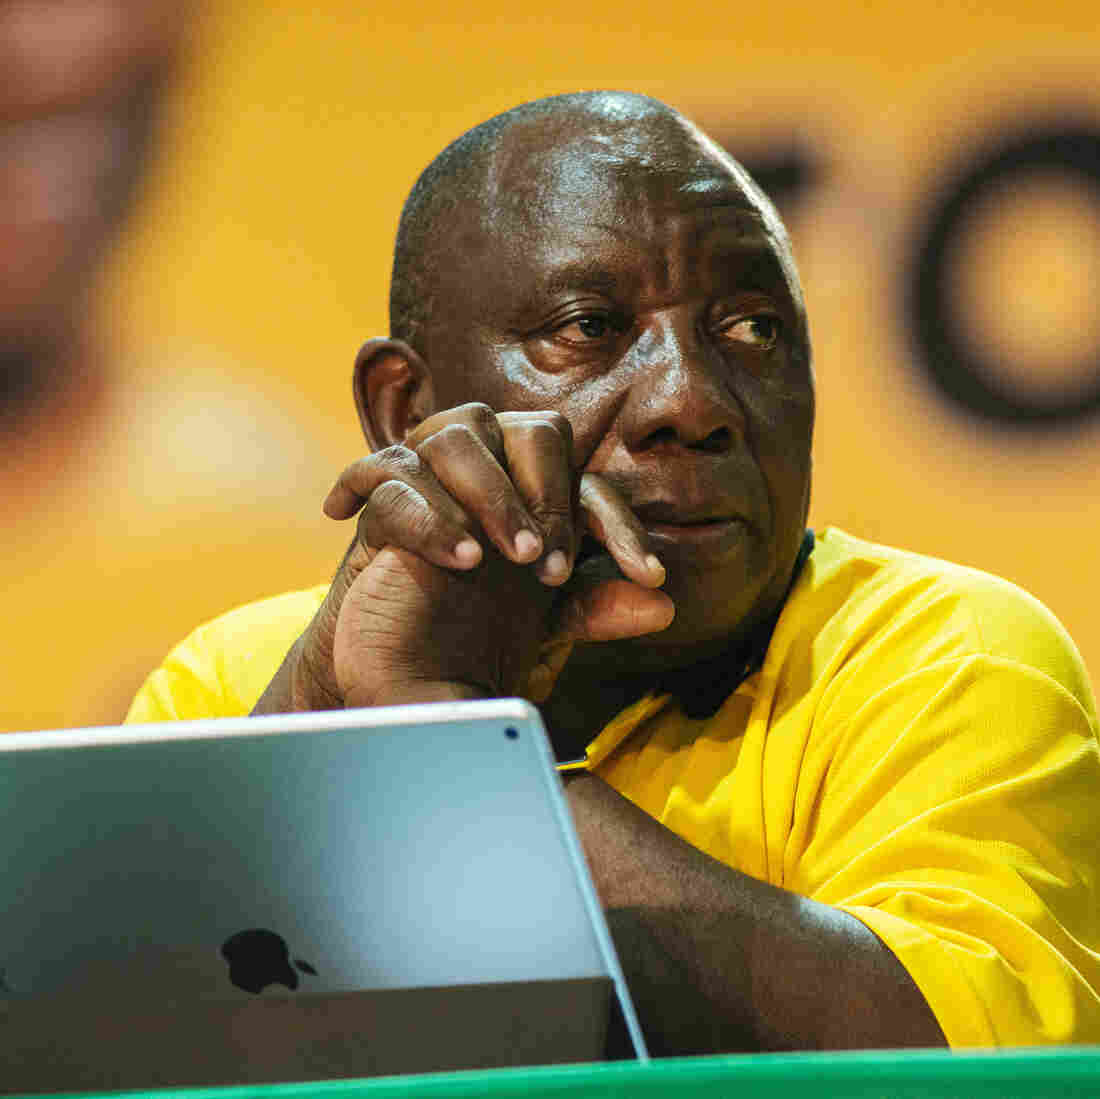 South Africa's ruling ANC chooses Cyril Ramaphosa to replace President Zuma